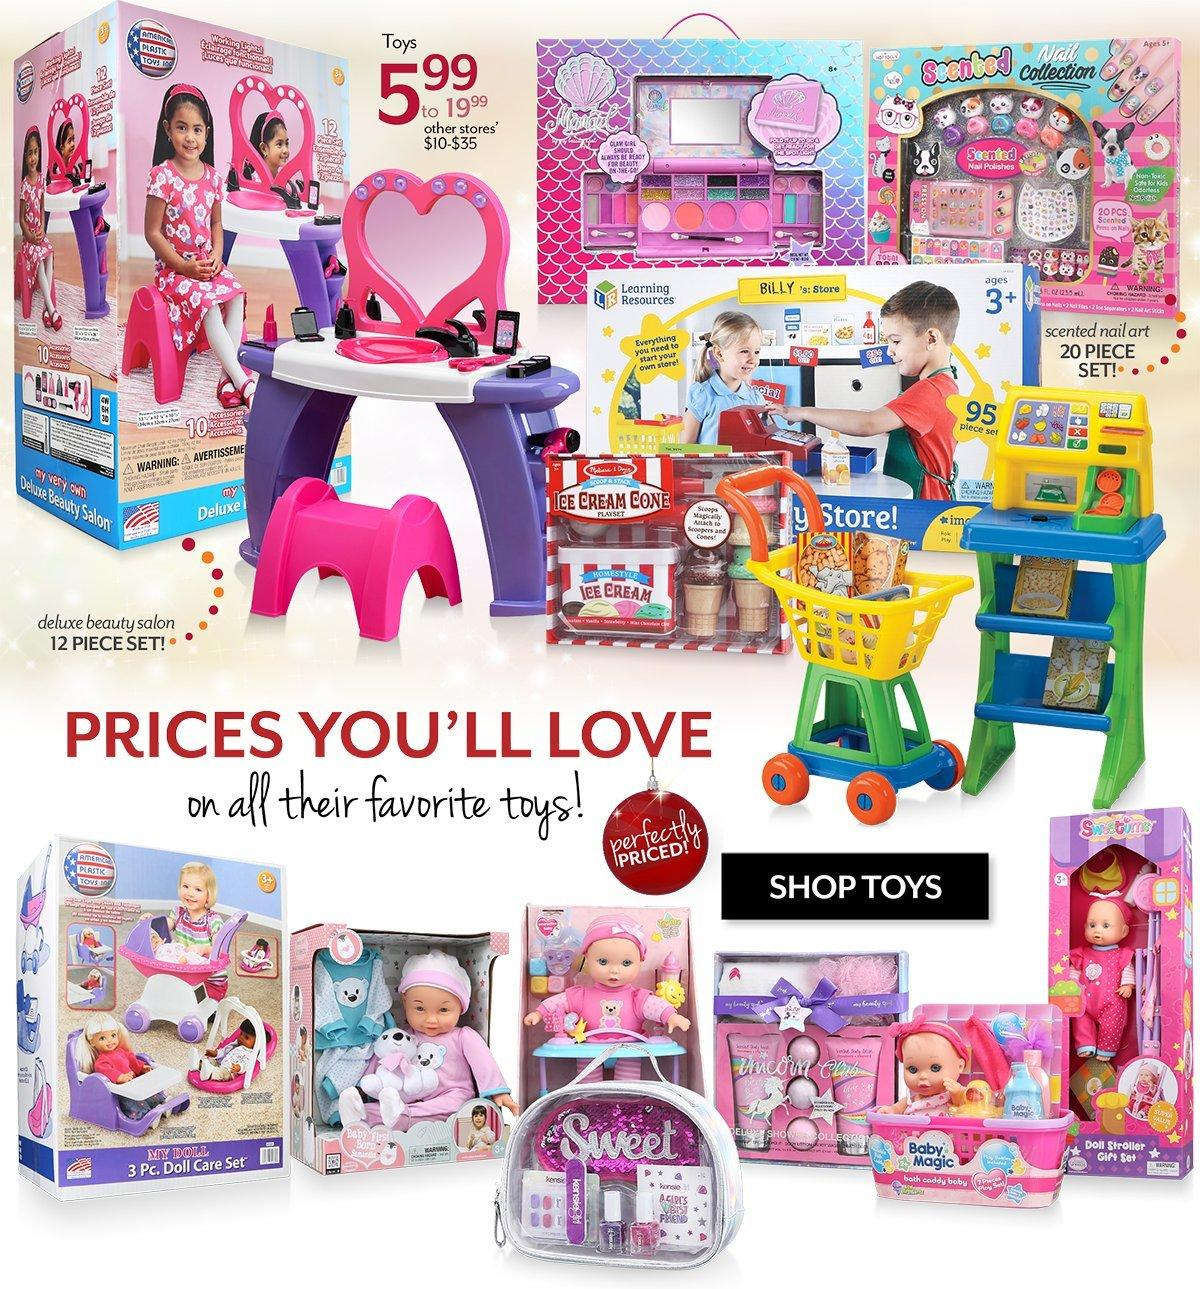 Shop Gifts and Toys for Girls